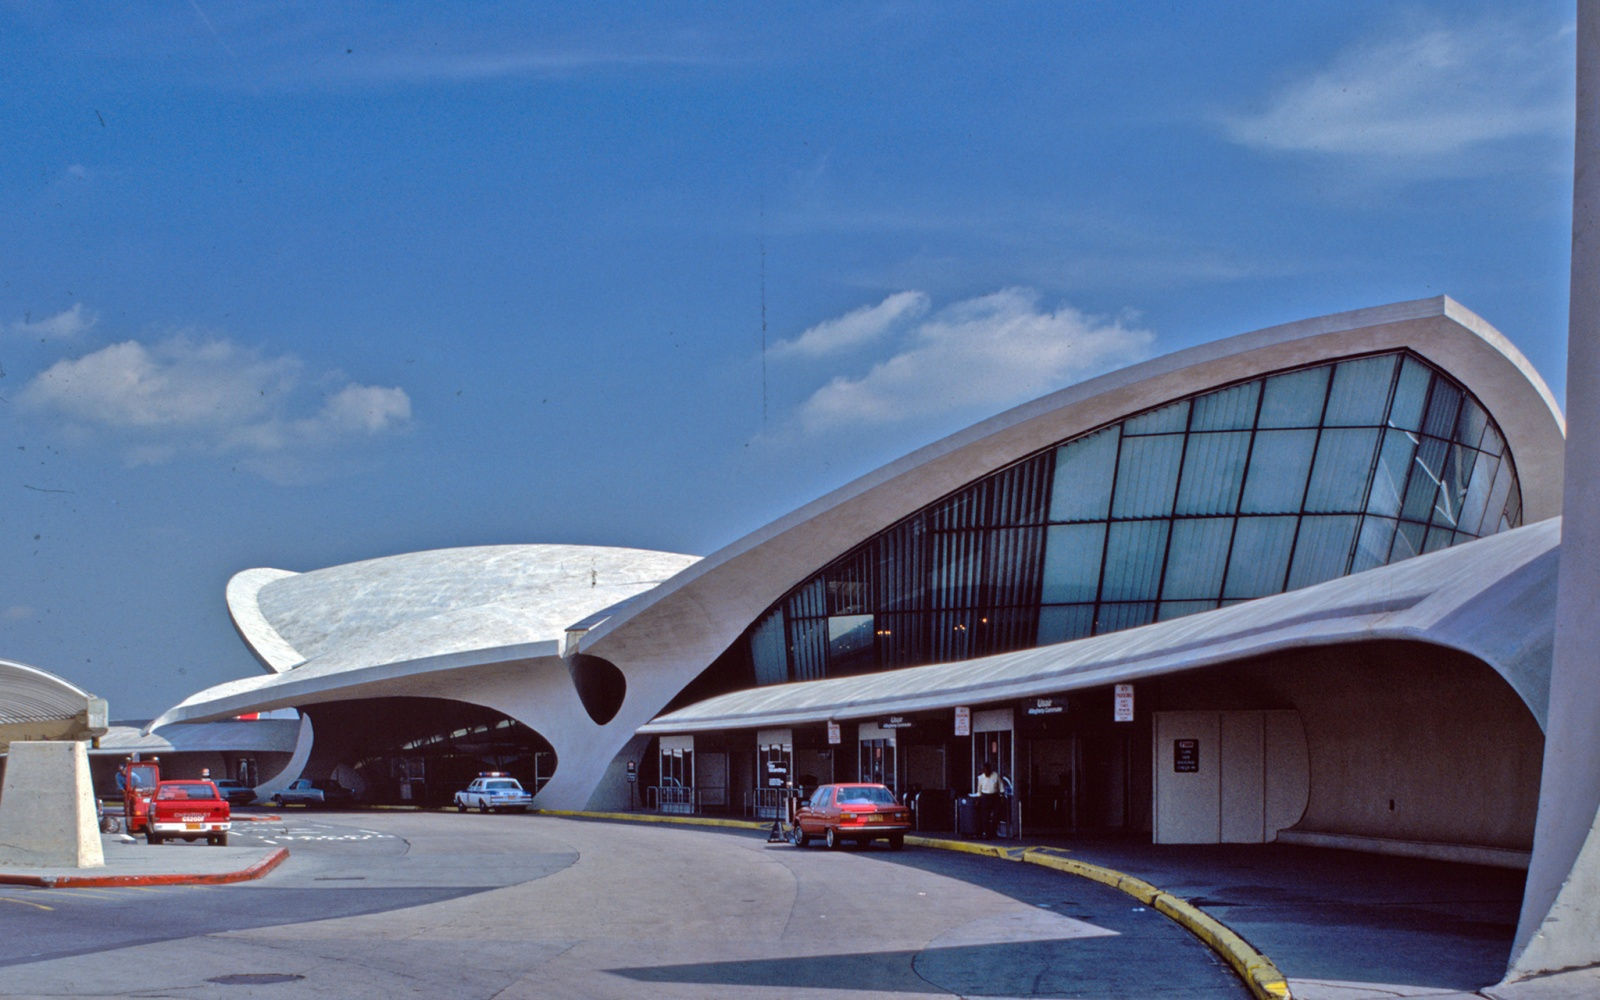 Jetblue hotel twa terminal travel leisure for Hotel at jfk terminal